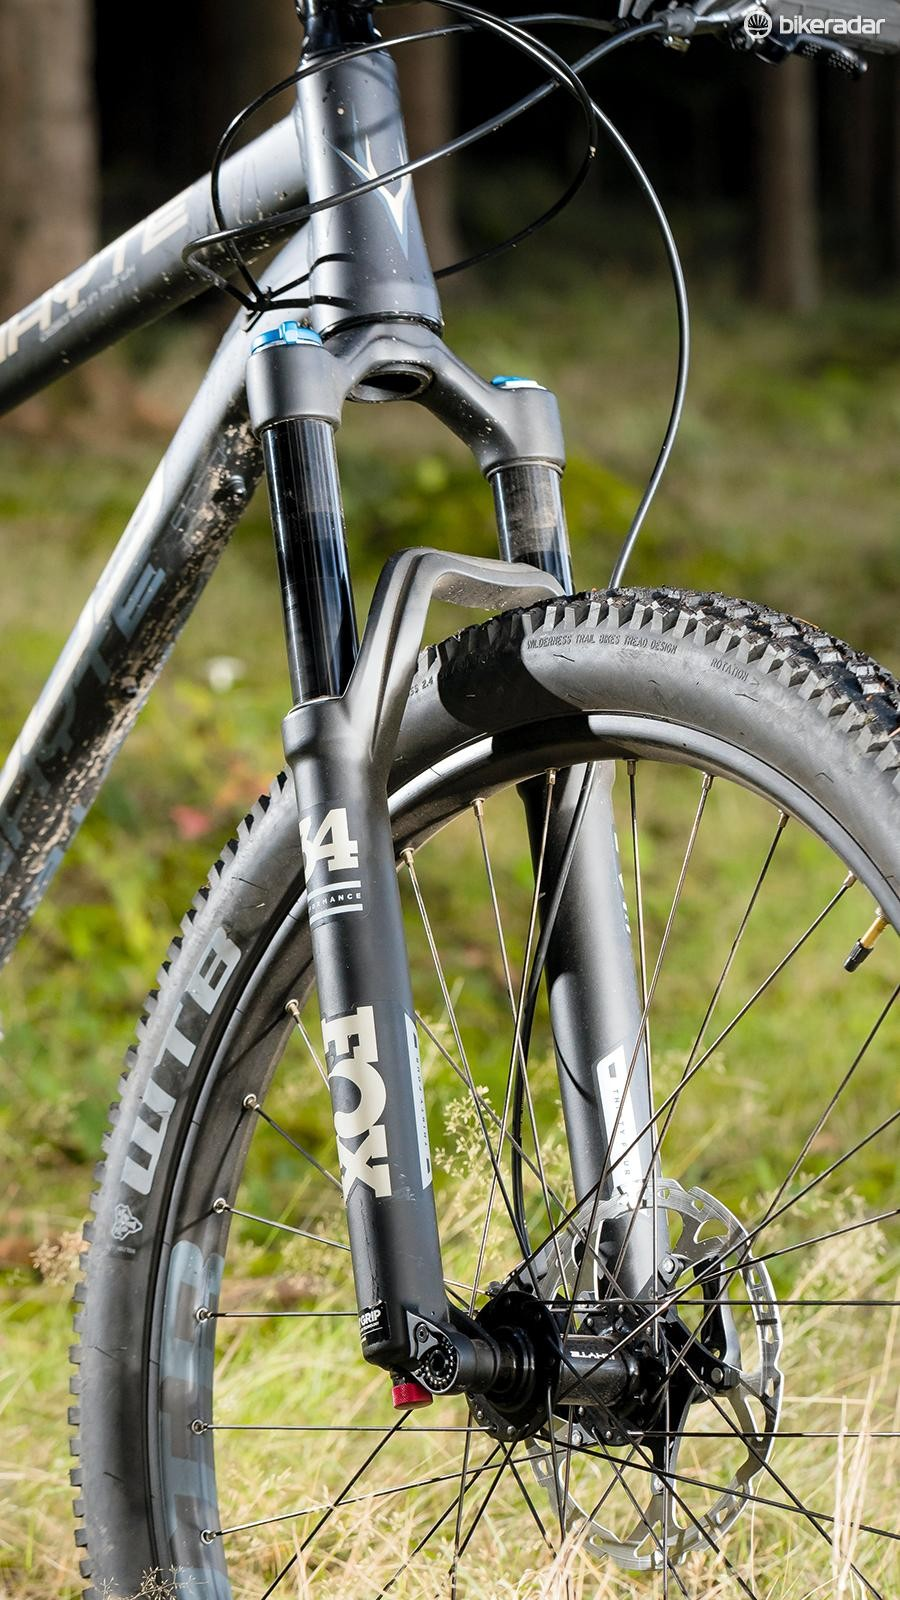 5564f9d273b Whyte's 909 hardtail Russell Burton. The Fox Float 34 Performance fork isn't  as supple as some